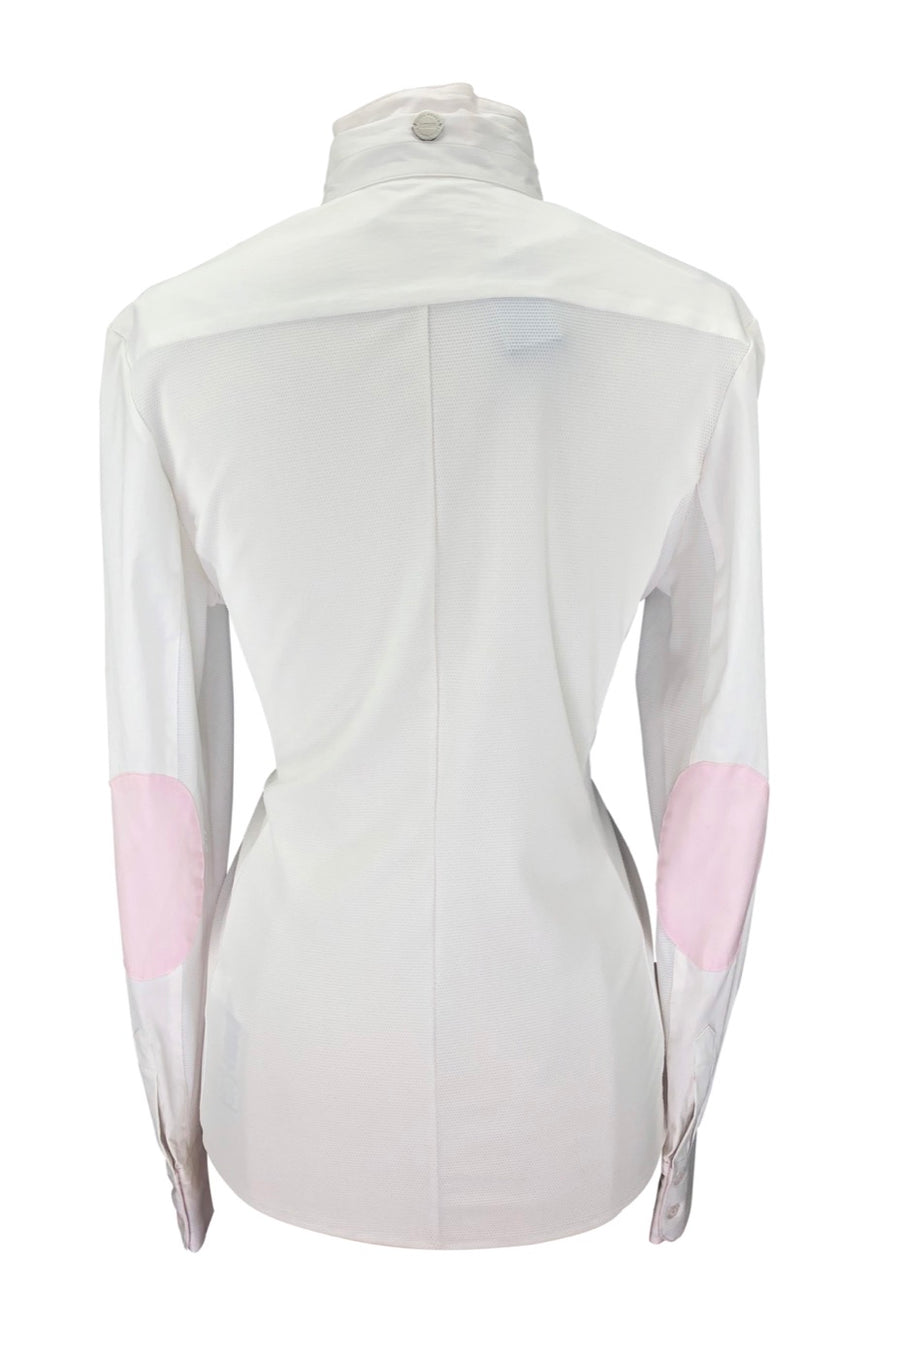 back view of Noel Asmar Wellington Mesh Show Shirt in White/Pink